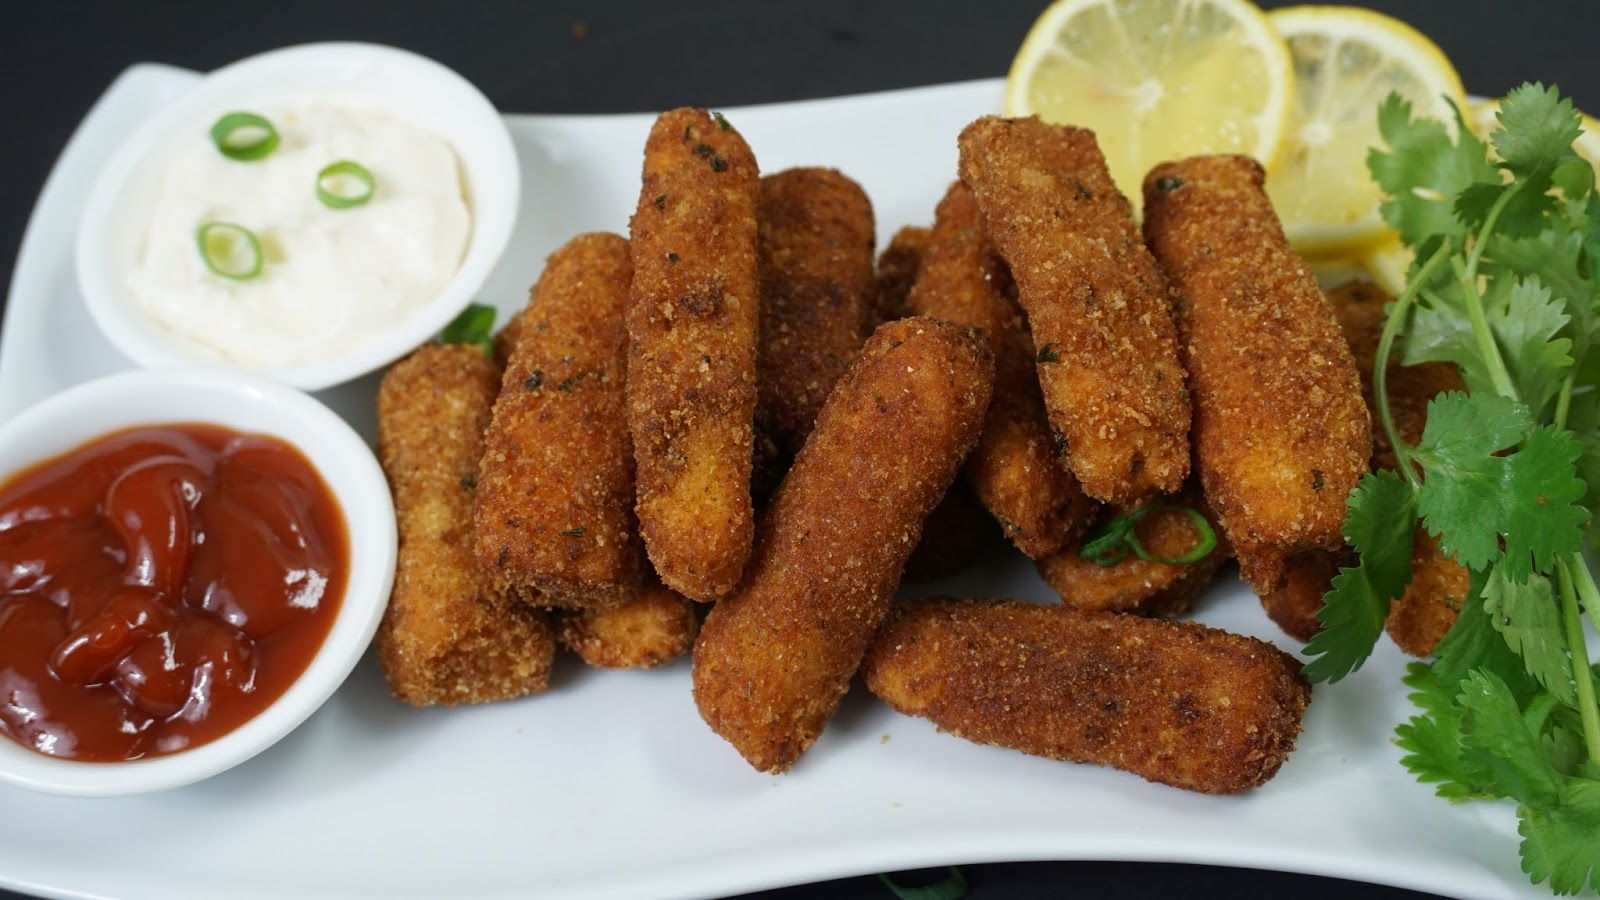 Fish fingers fish nuggets steffi 39 s recipes for Fish without bones